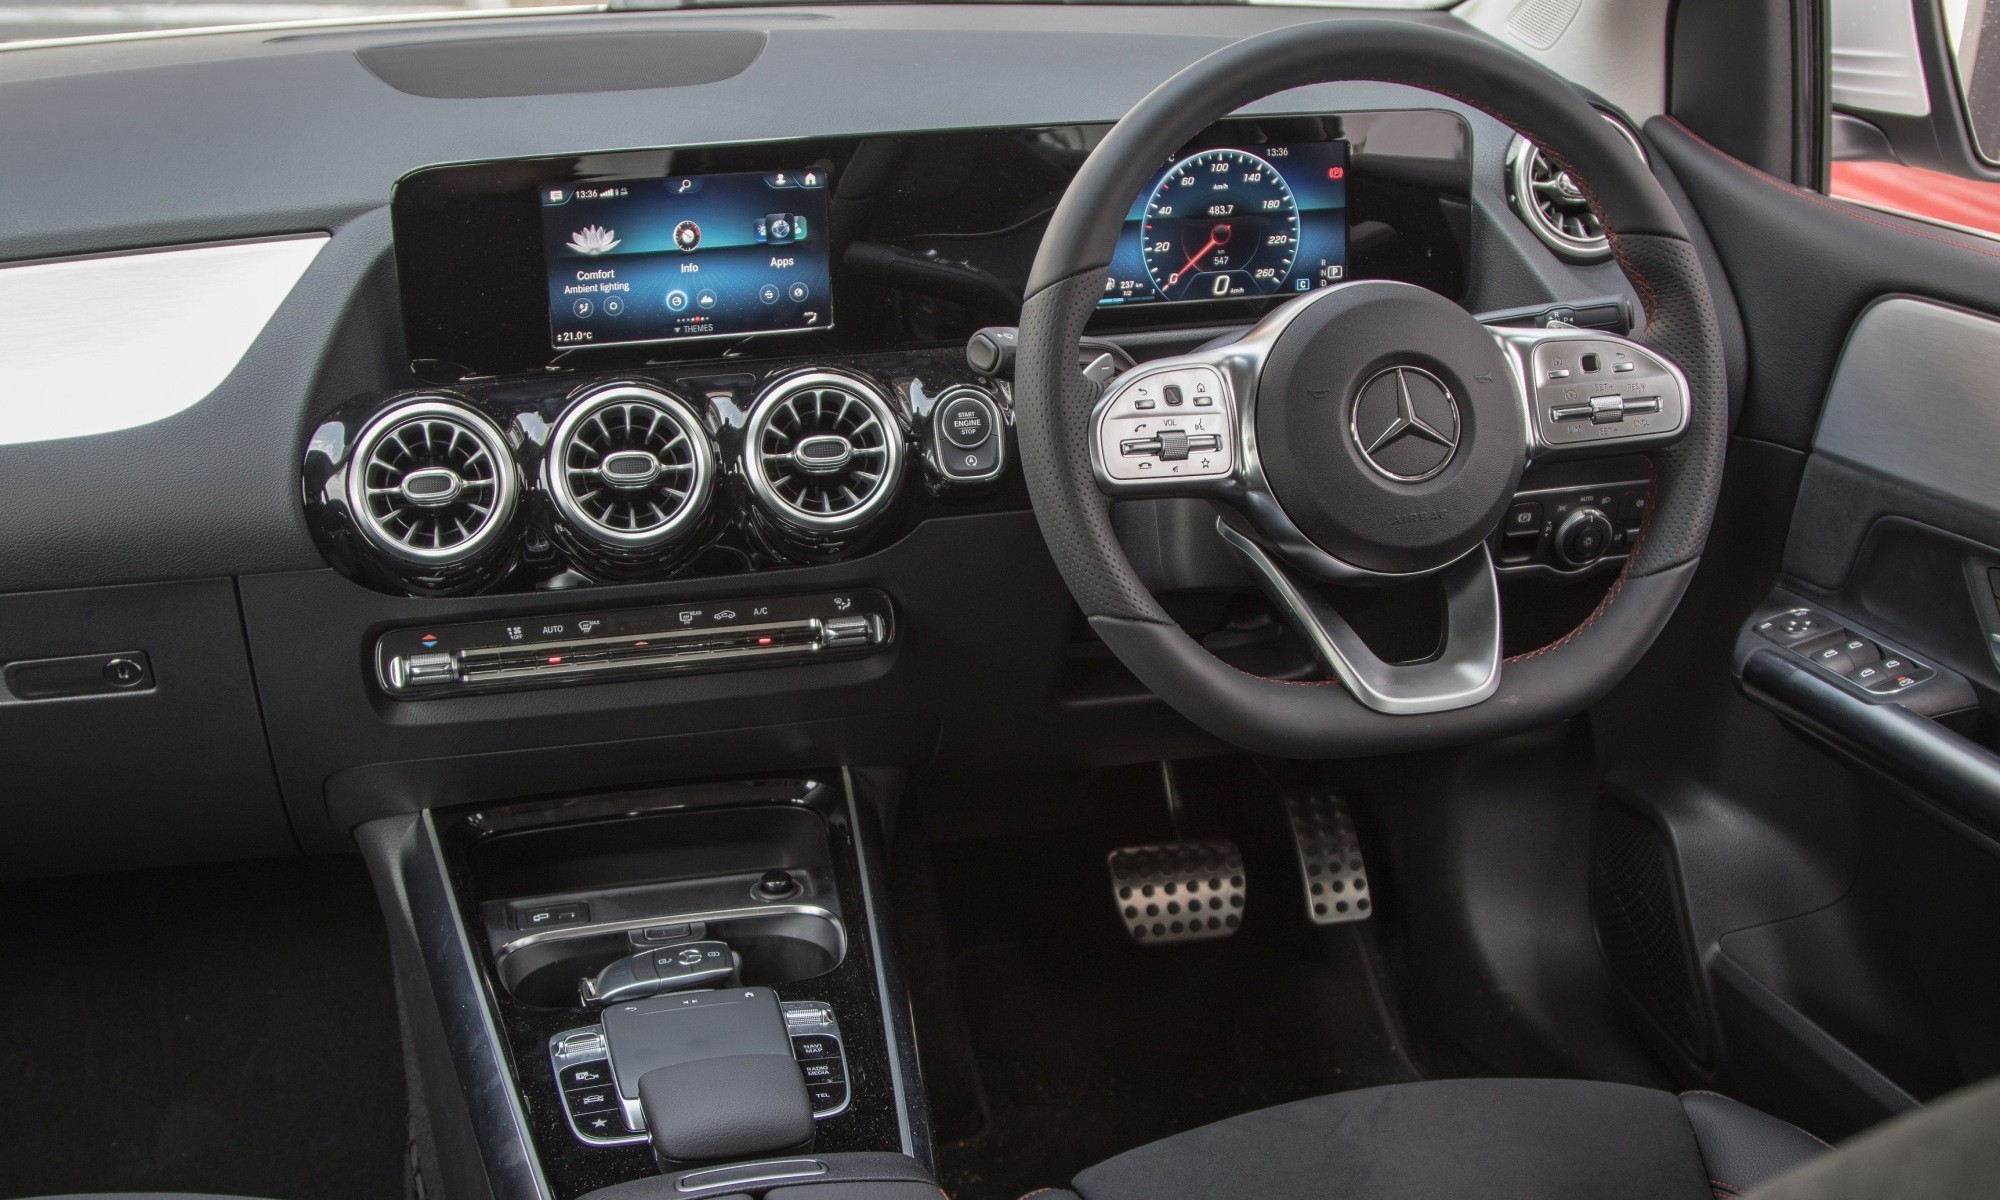 Mercedes-Benz B200 interior